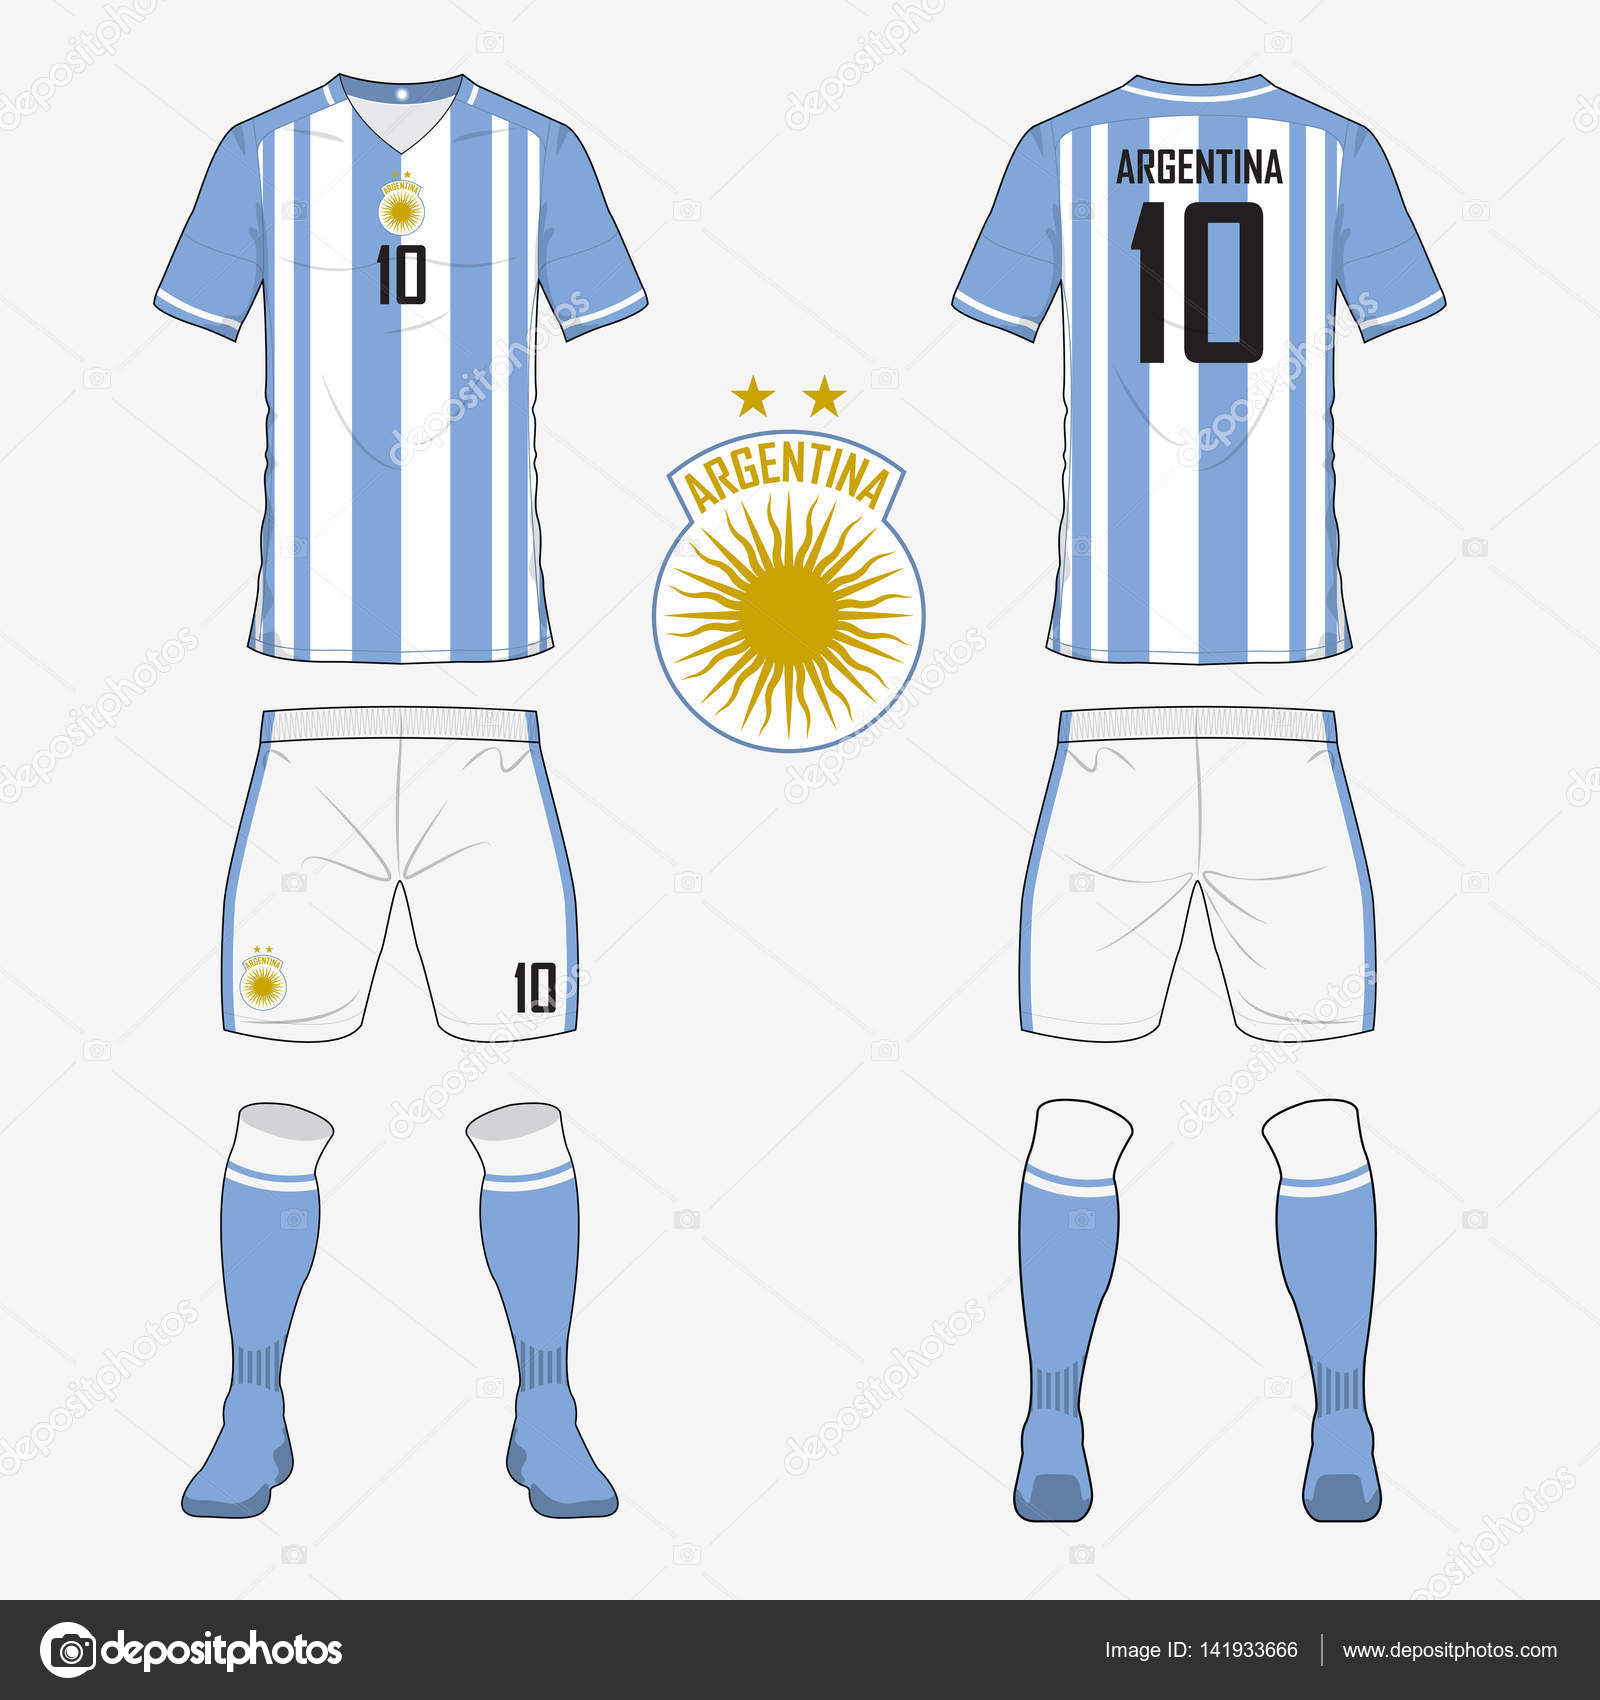 Set Of Soccer Jersey Or Football Kit Template For Argentina National Team Front And Back View Uniform Sport Shirt Mock Up